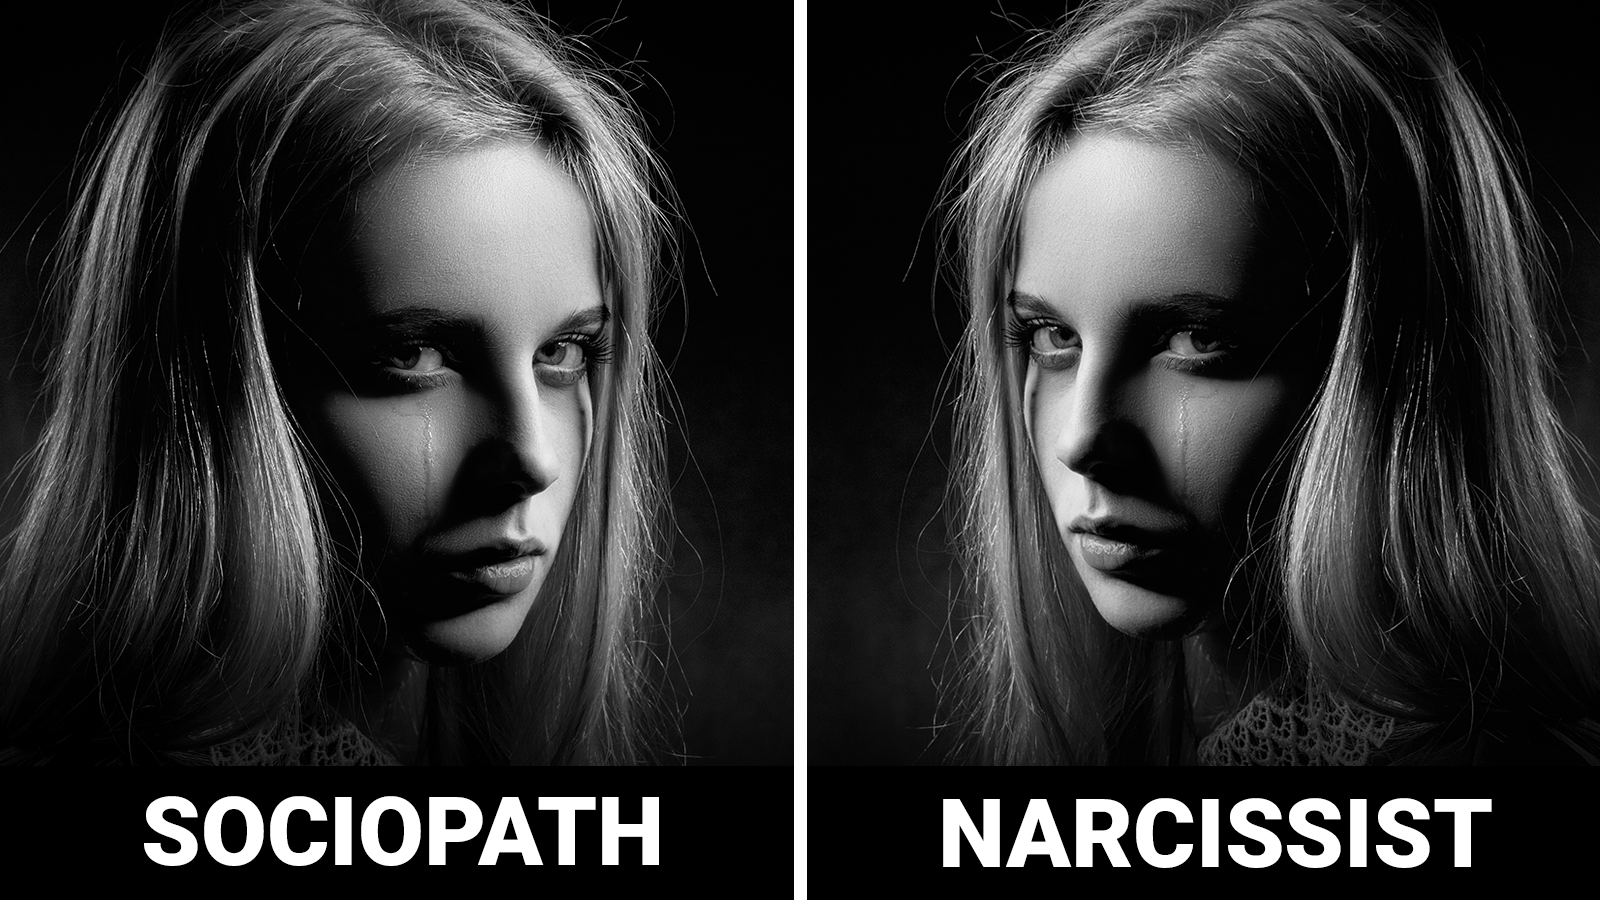 3 Differences Between a Narcissist and a Sociopath